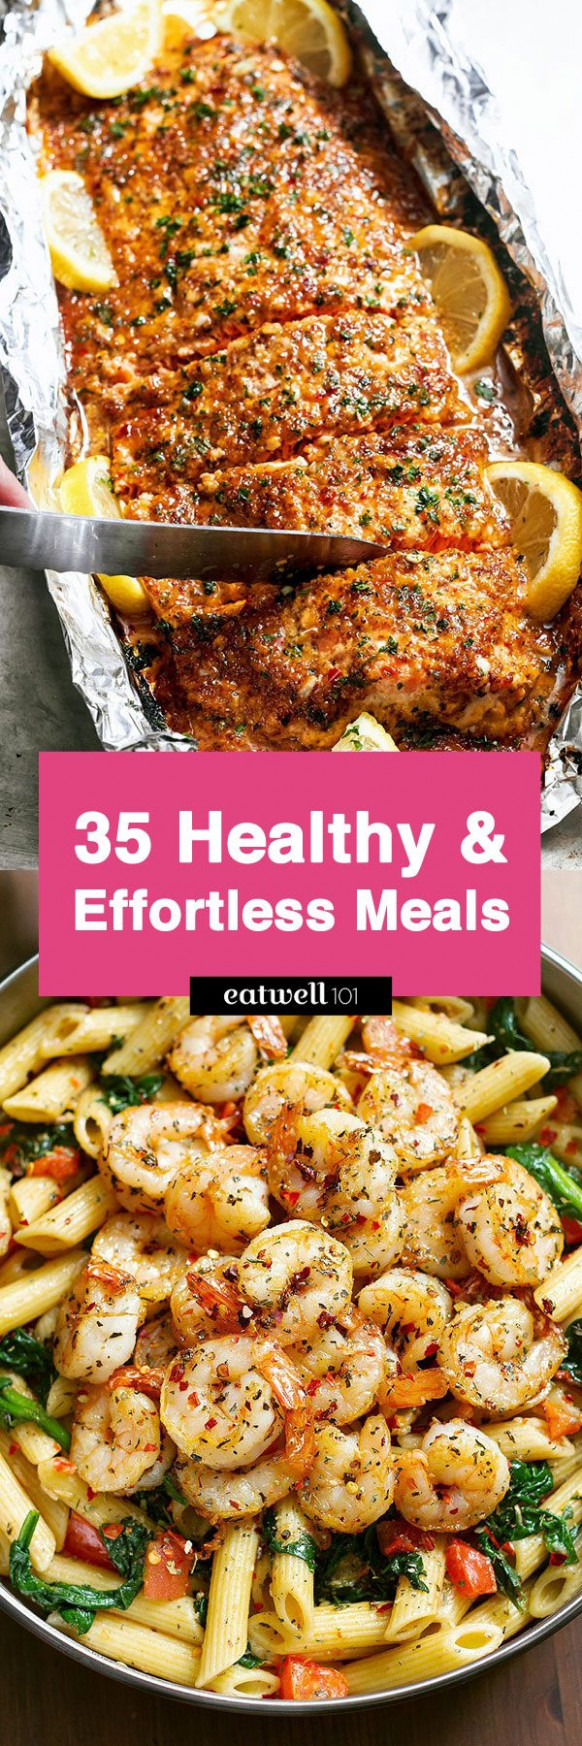 Easy Healthy Dinner Ideas: 9 Low Effort And Healthy Dinner …